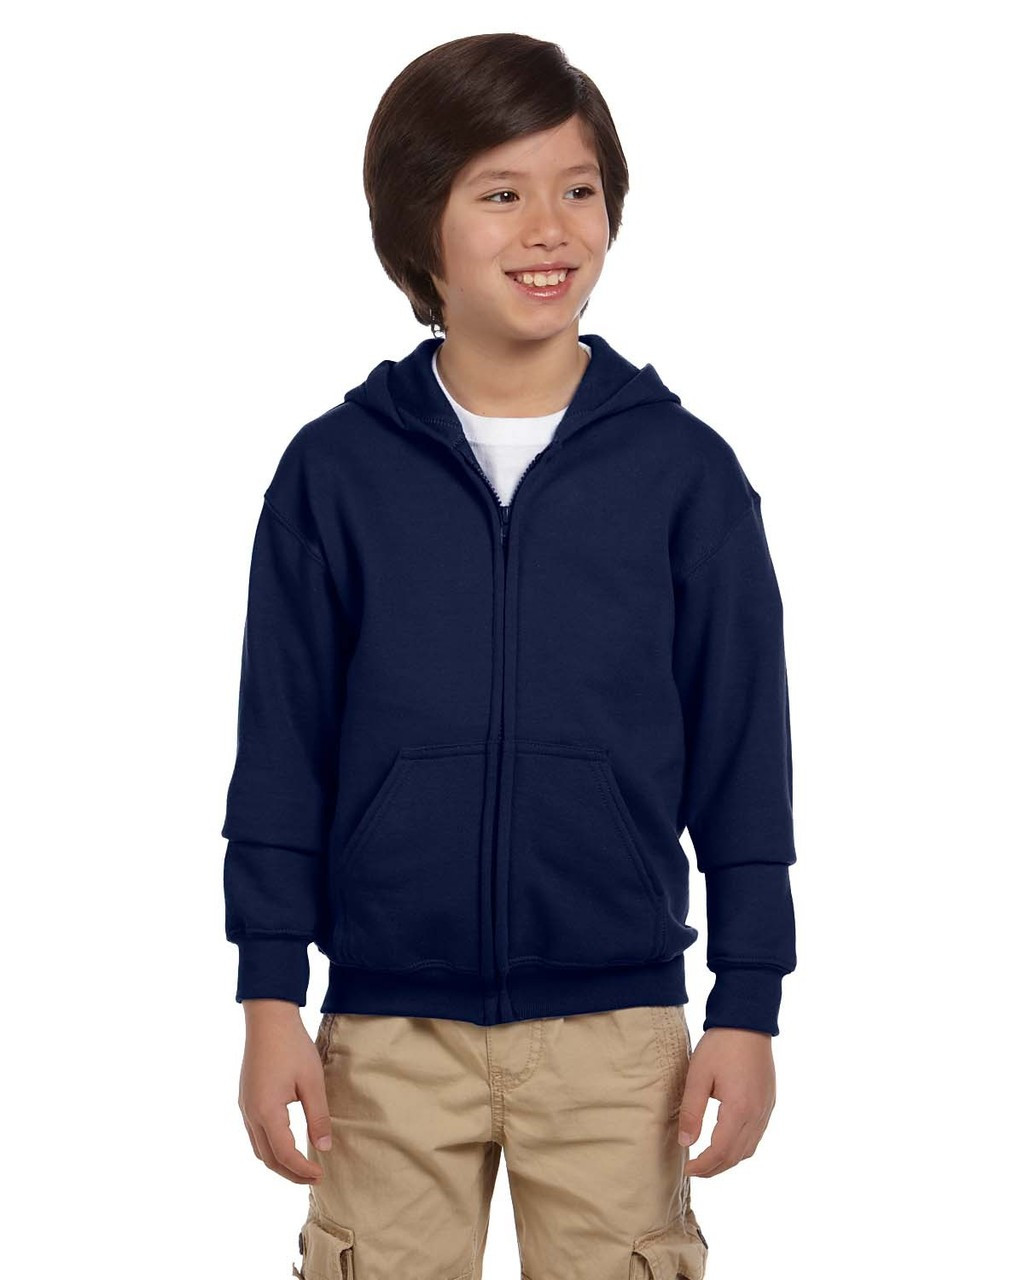 Navy - G186B Gildan Heavy Blend Youth 50/50 Full Zip Hoodie | Blankclothing.ca